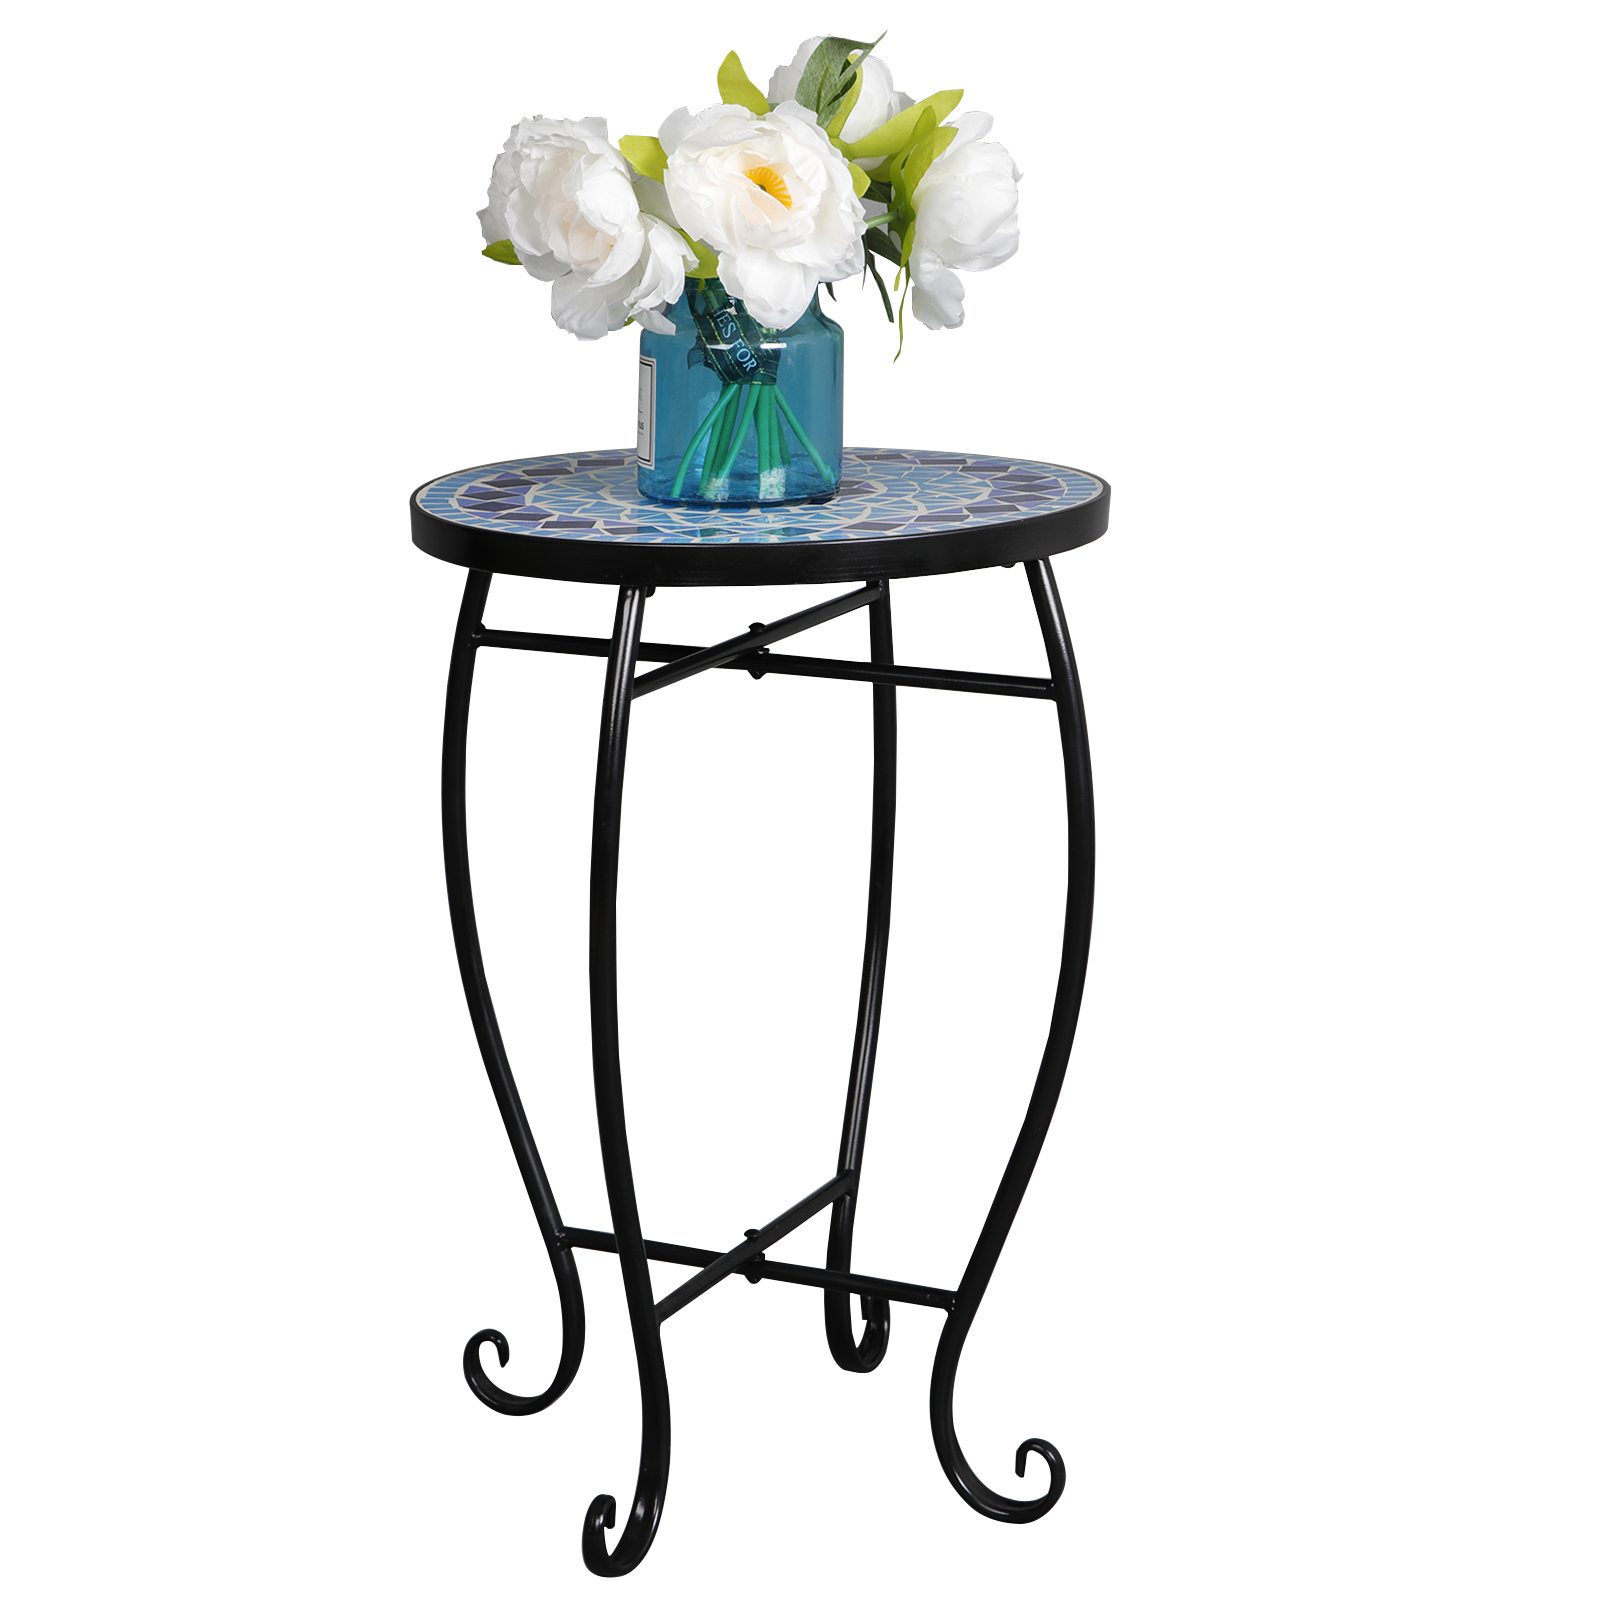 Zeny Mosaic Round Side Accent Table Patio Plant Stand